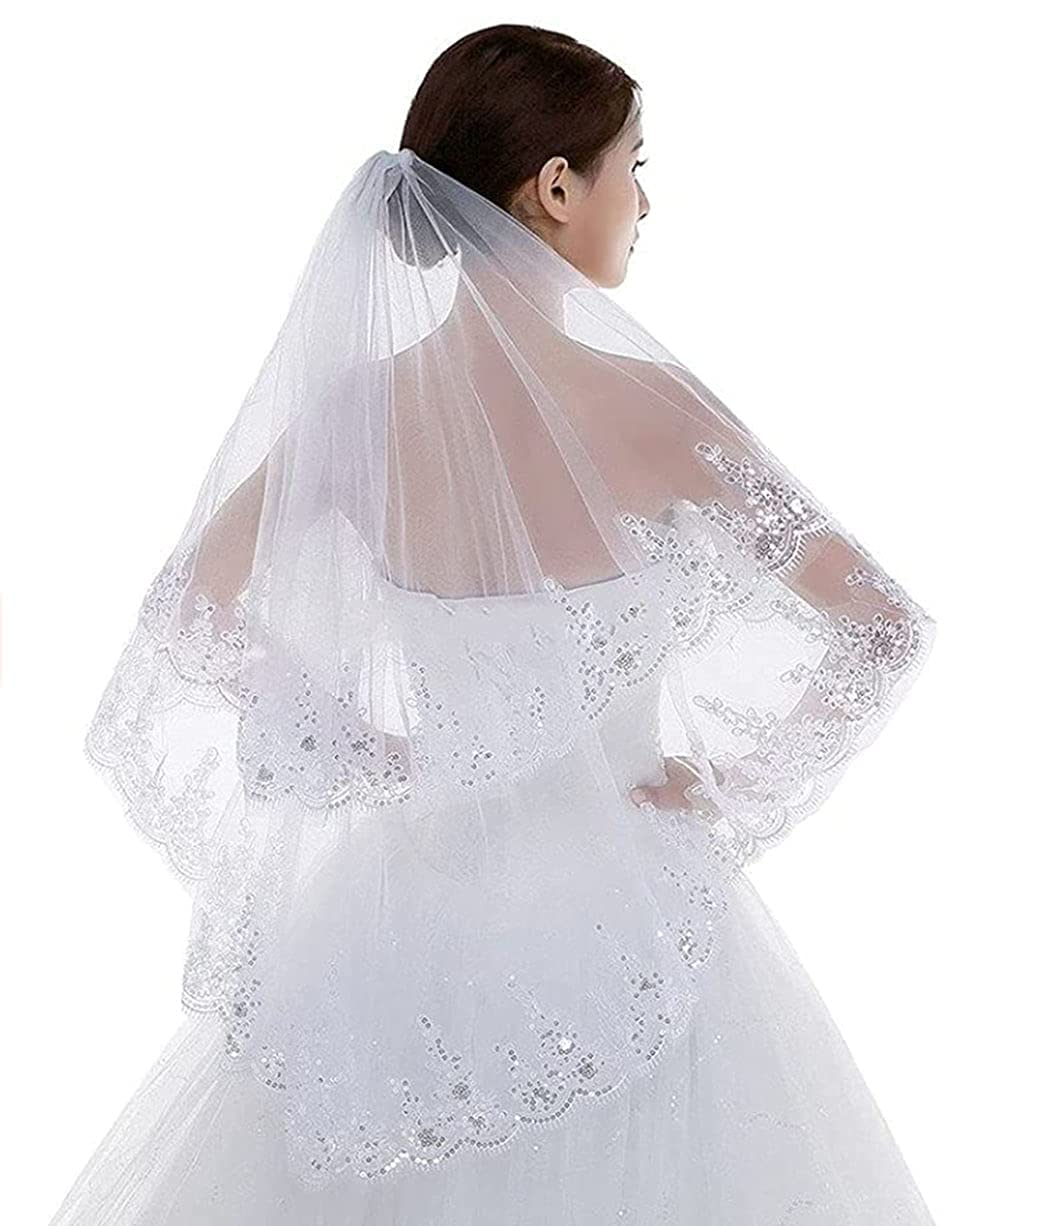 Brinote Sequins Lace Edge Wedding Veil for Brides 2-Tier Short Veil Hip Length Bridal Veils with Comb Sparkle Soft Tulle Hair Accessories for Bride (White)